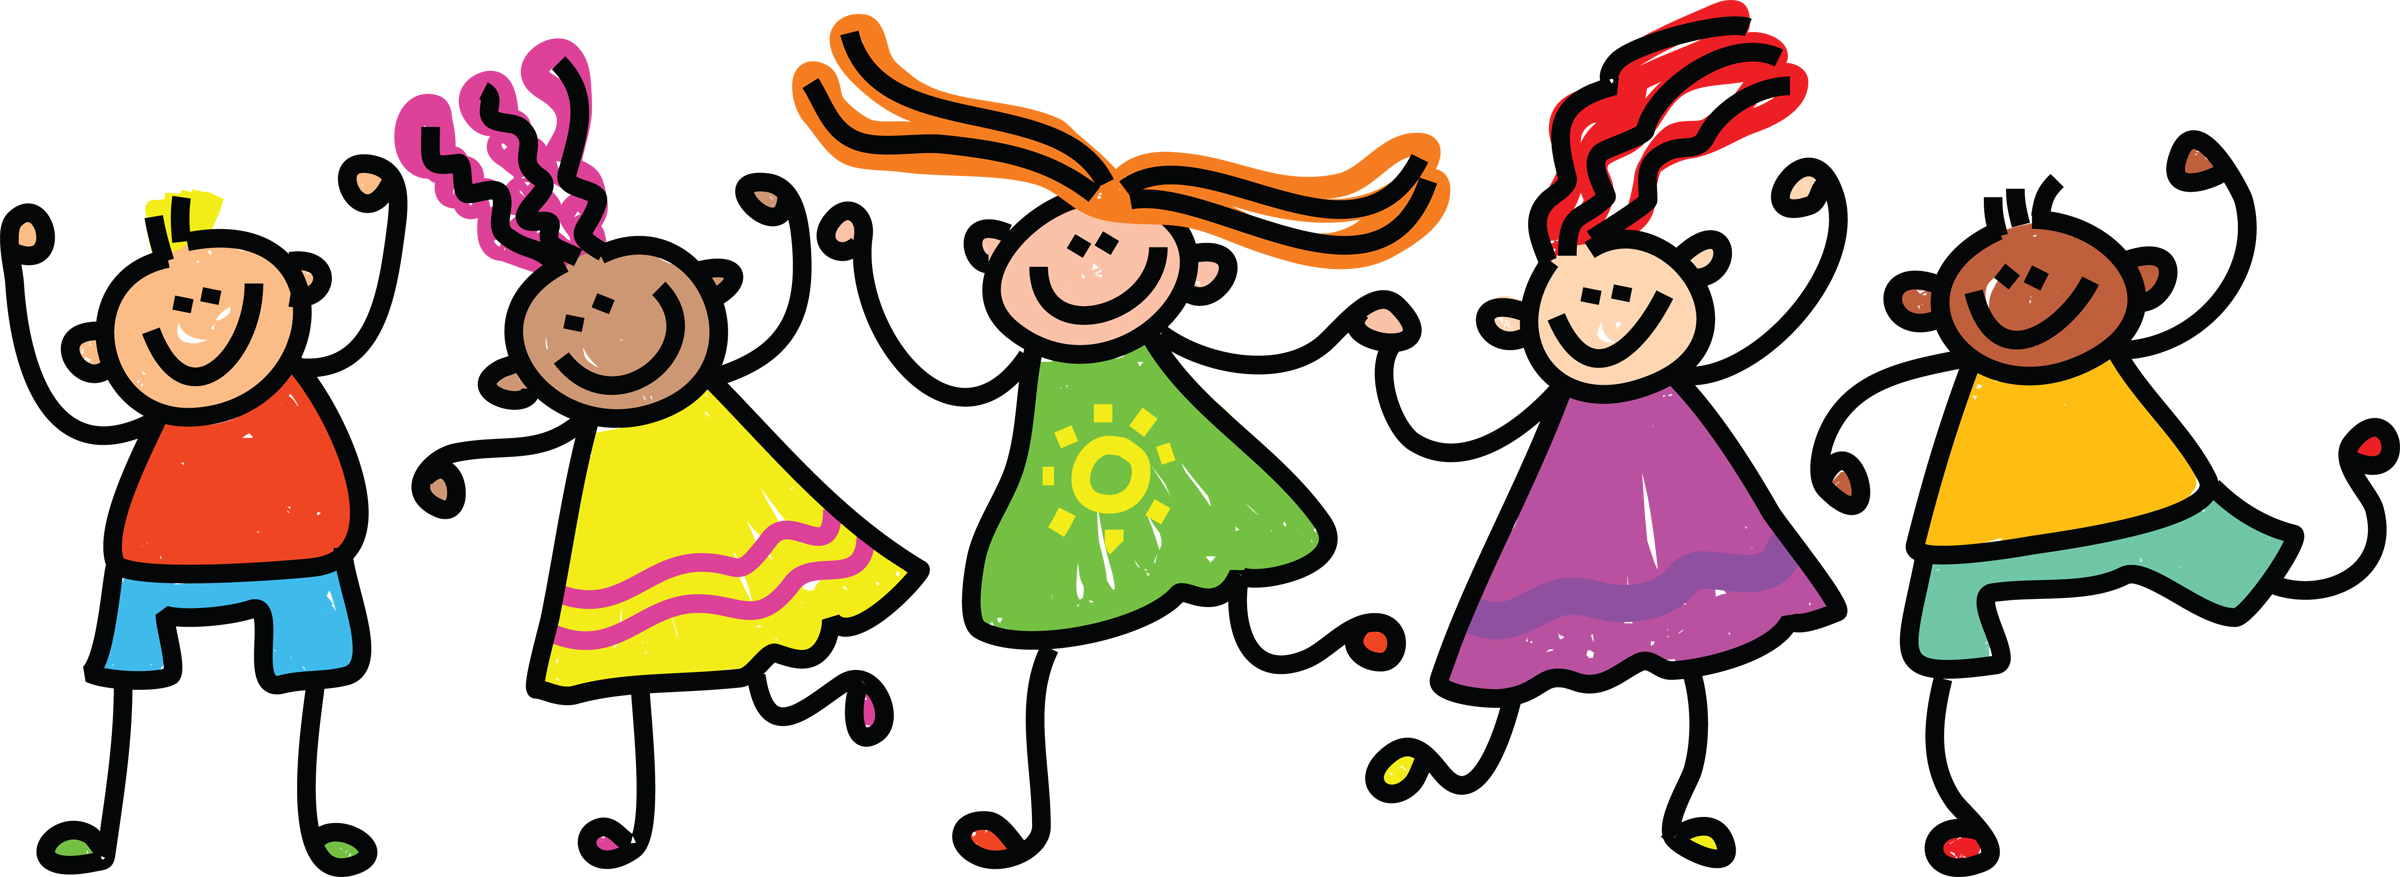 Celebrate clipart clear background. Free happy student download